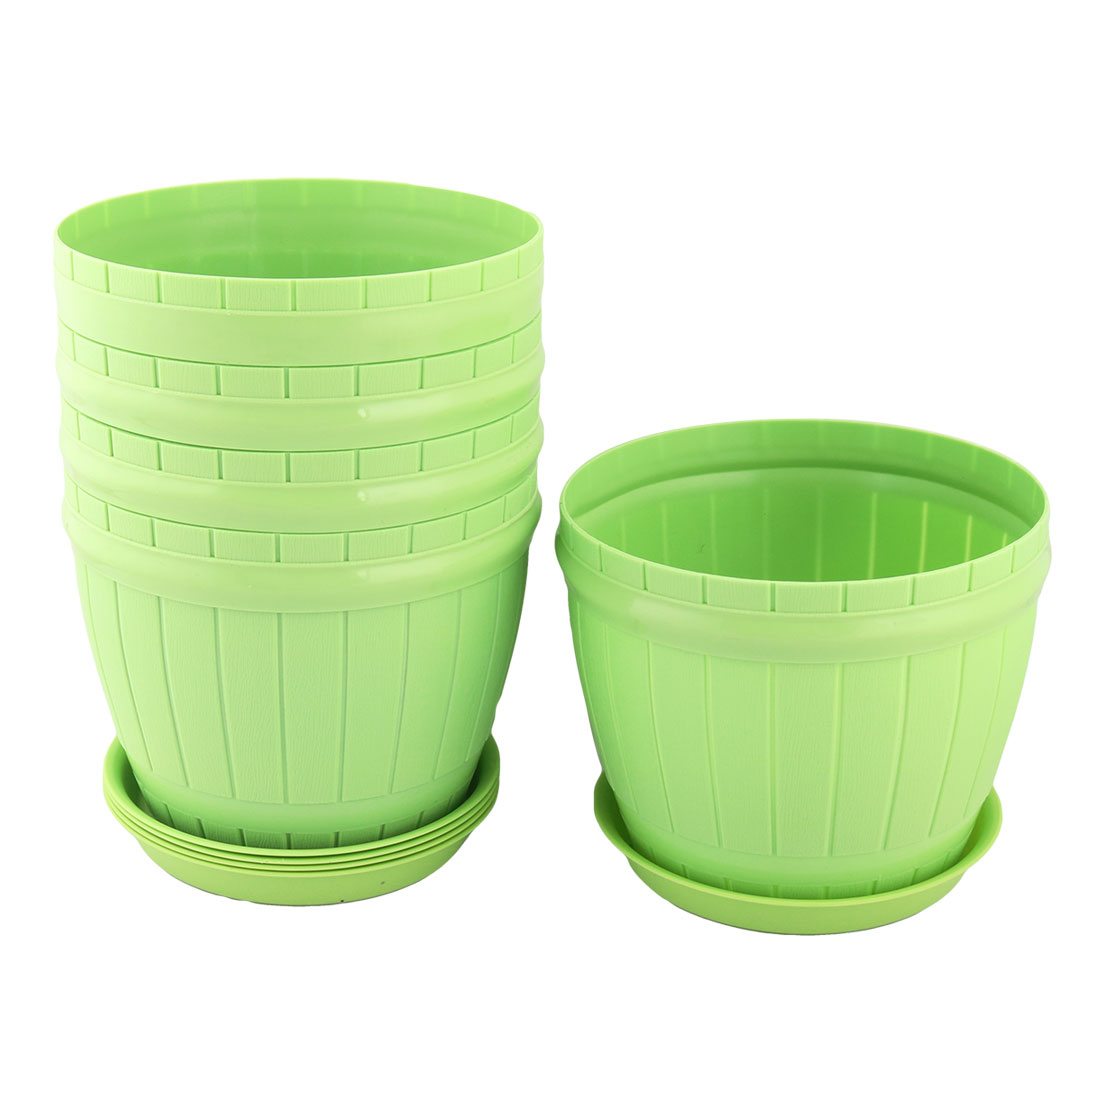 Home Parterre Plastic Round Aloes Plant Flower Seed Pot Holder Container Green 5pcs